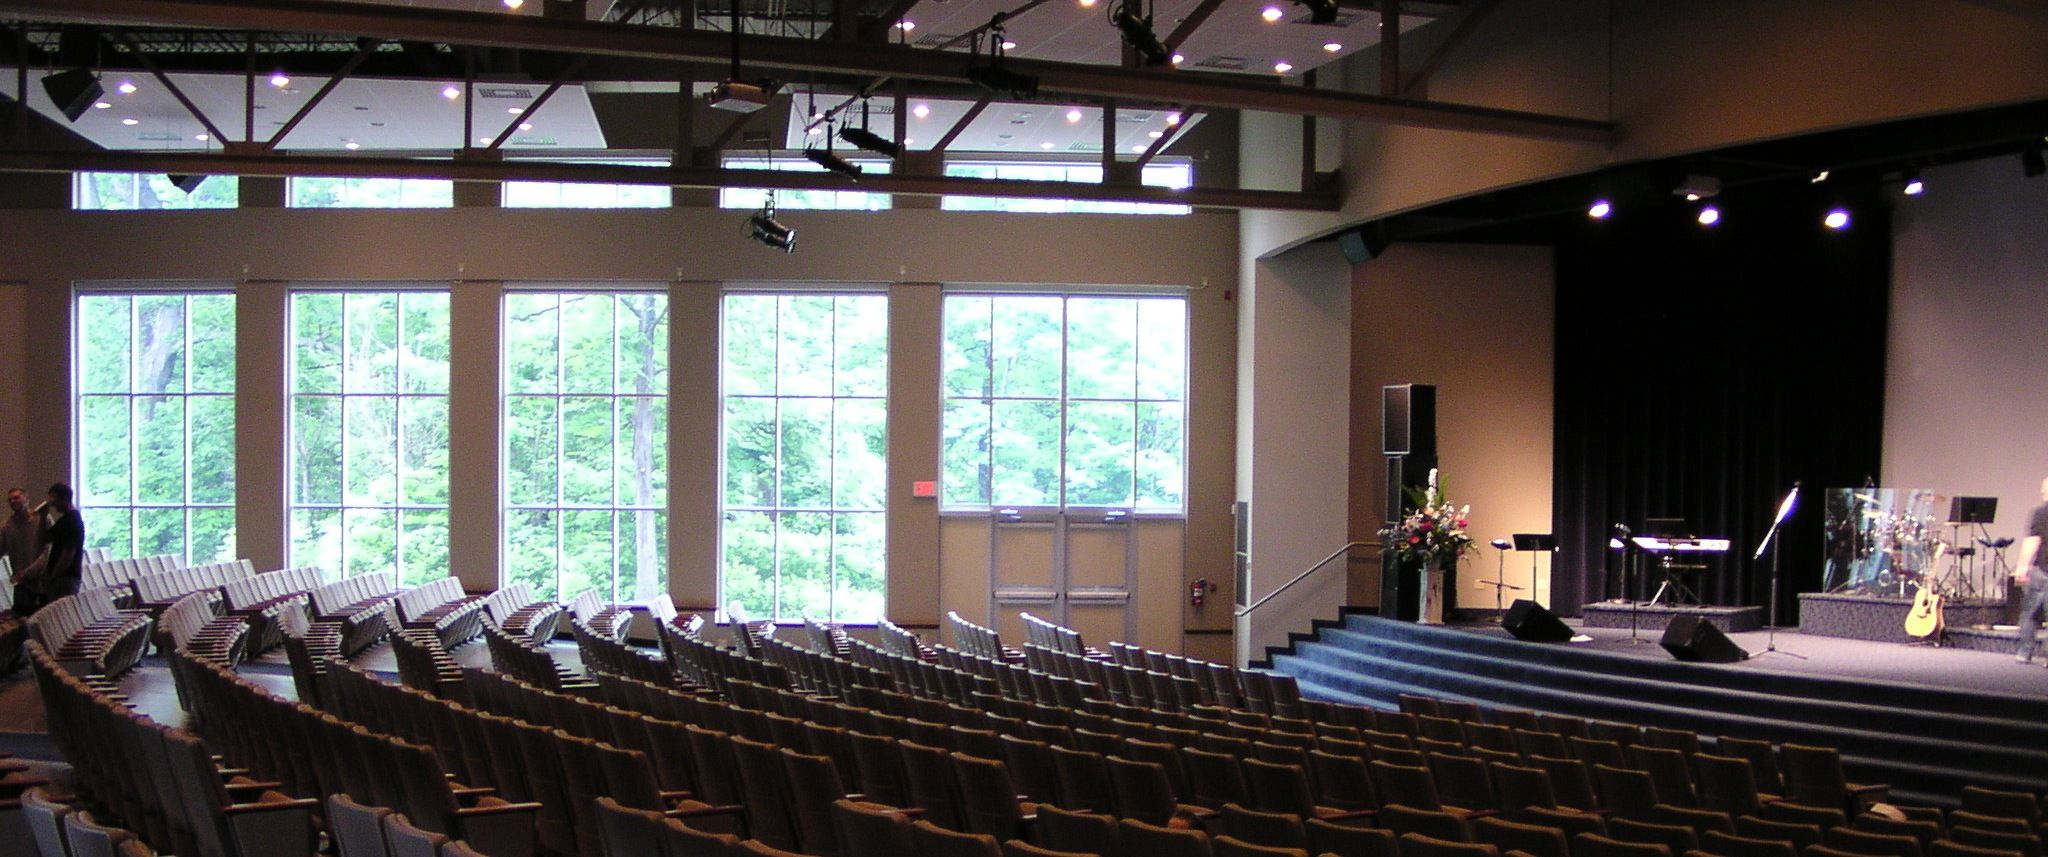 sanctuary designs for small churches church design dedicated sanctuary or multi purpose auditorium